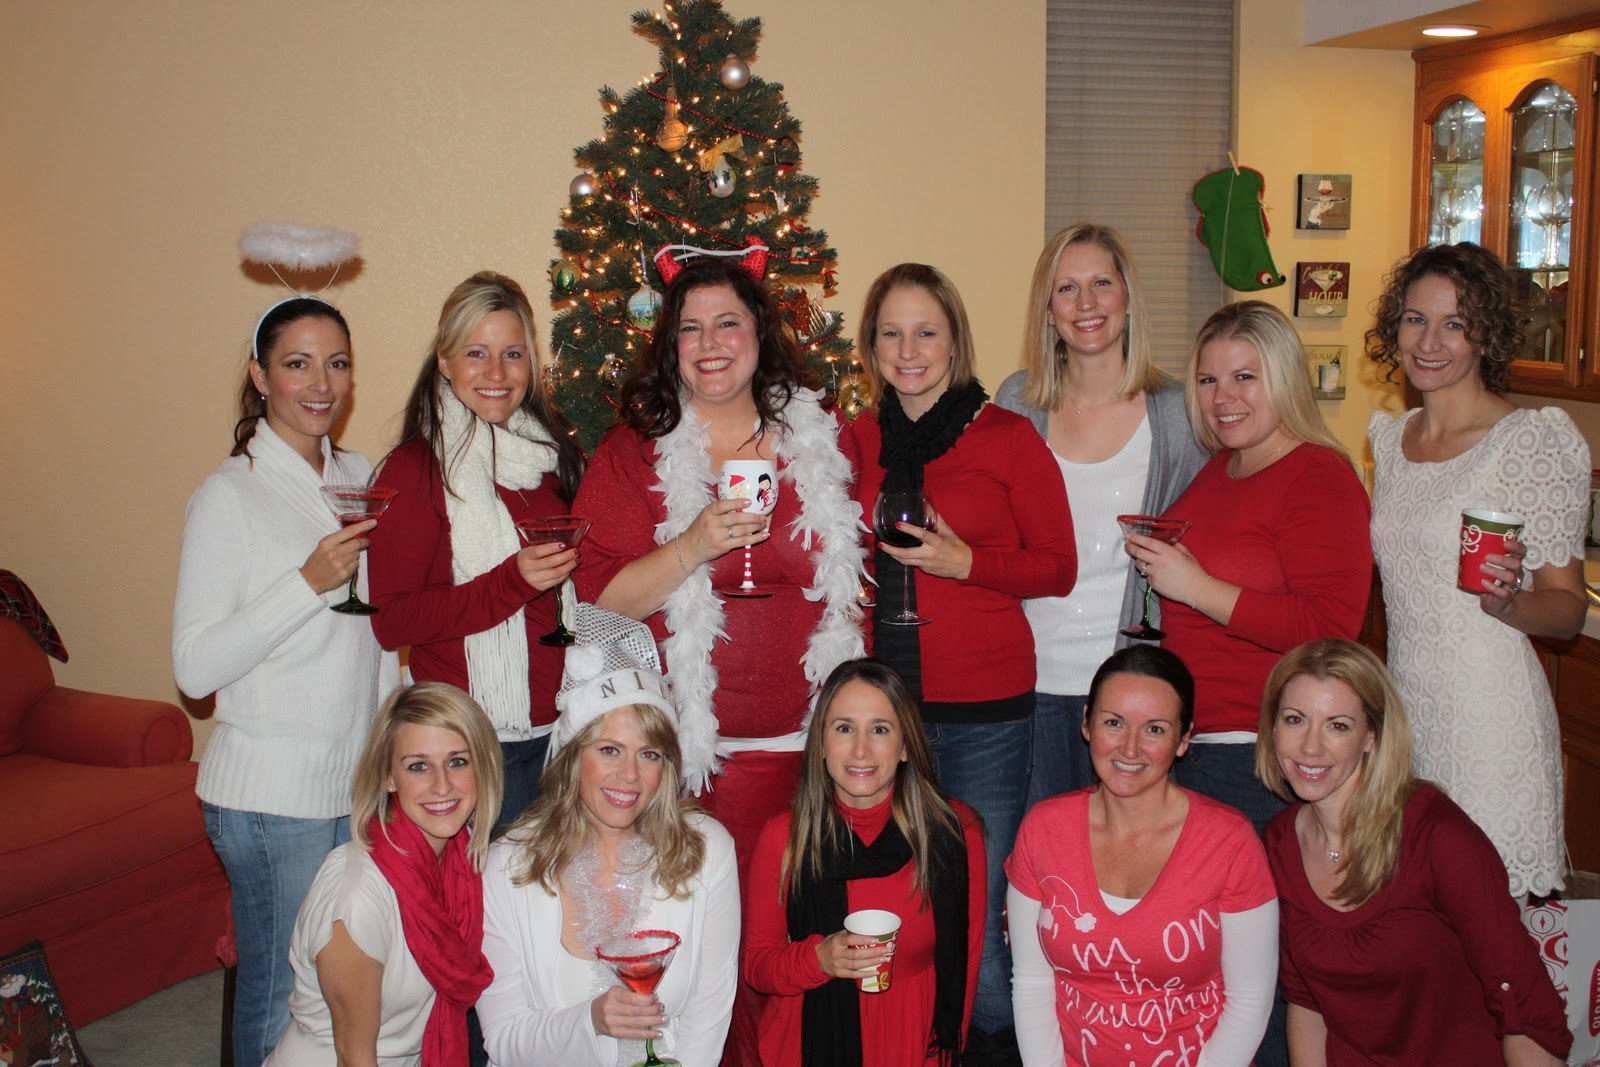 Then I Got To Thinking...: Naughty or Nice Bunco